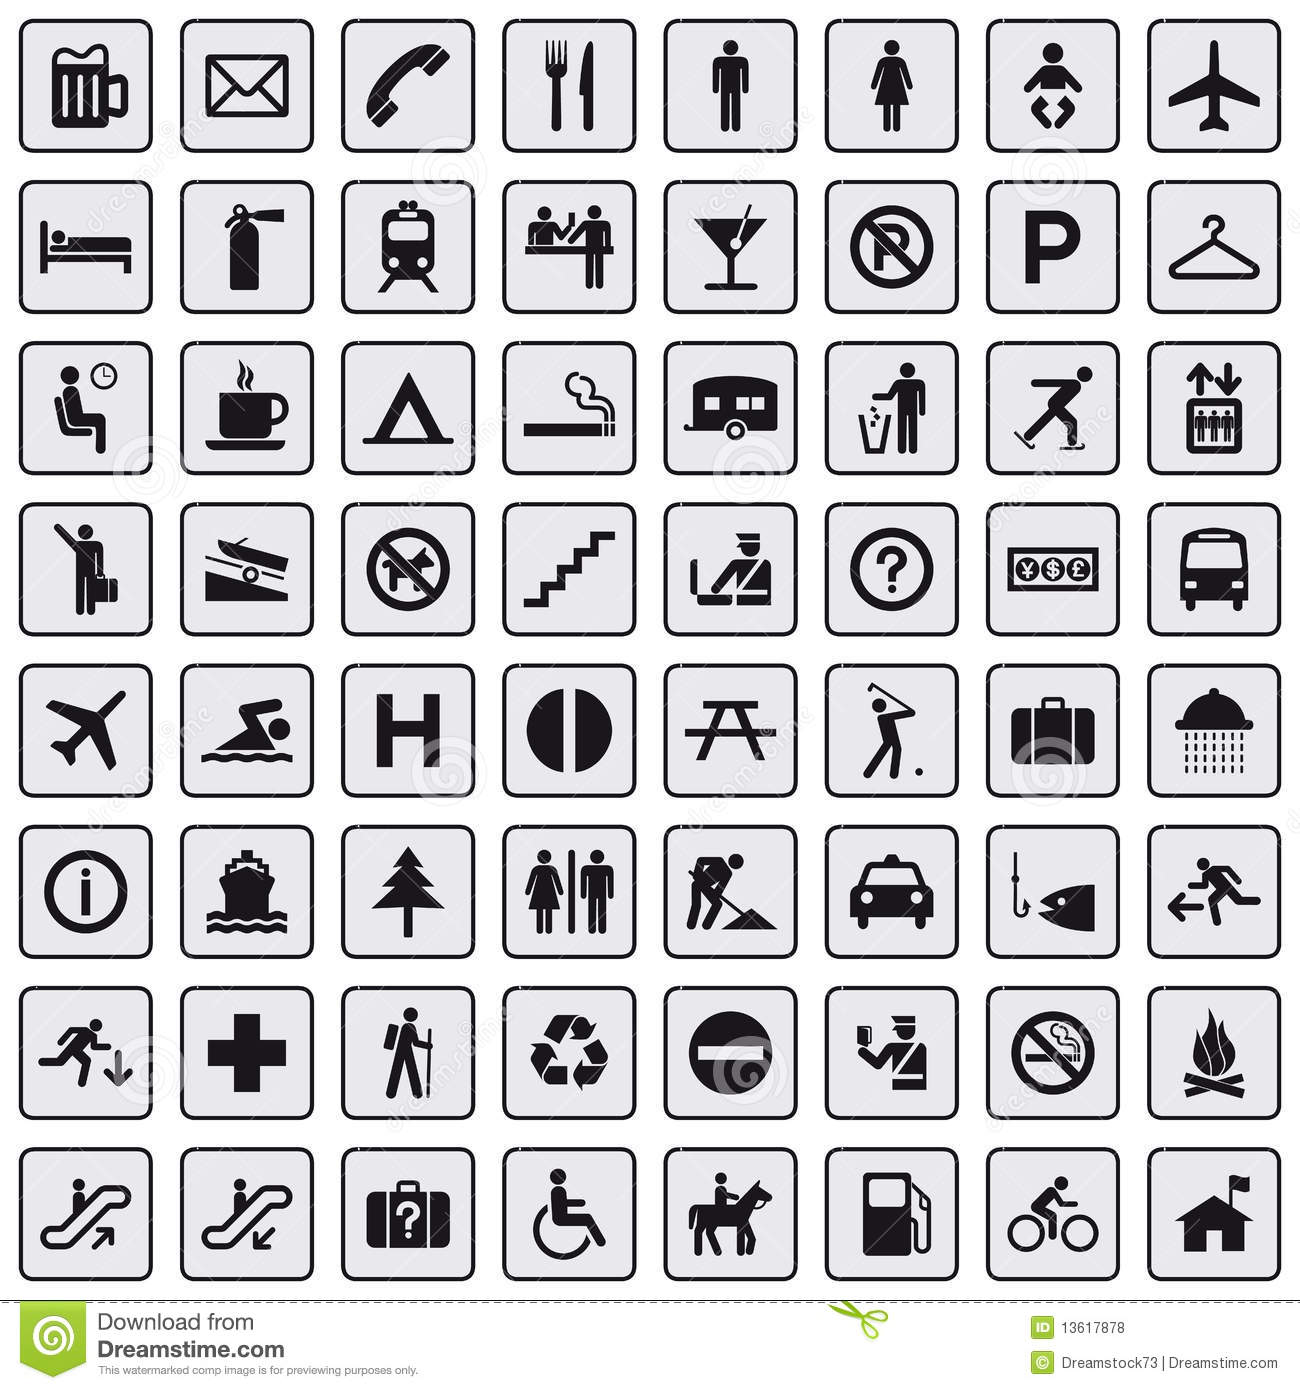 64 Different Icons Pictogram Grey Royalty Free Stock